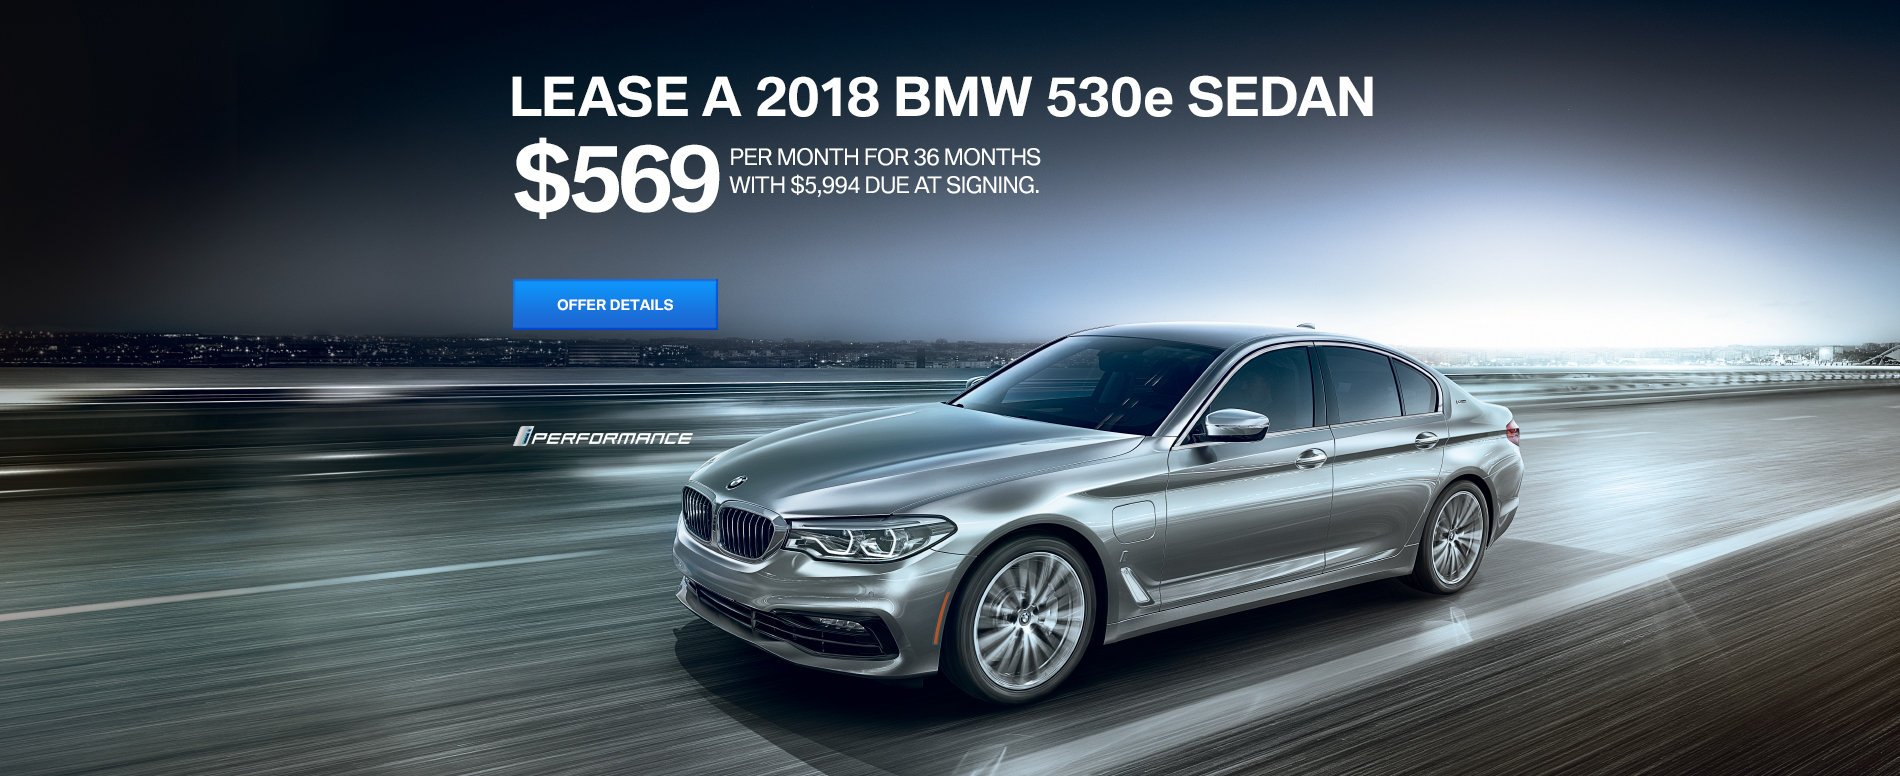 LEASE A 2018 BMW 530e iPERFORMANCE PLUG-IN HYBRID FOR $569 PER